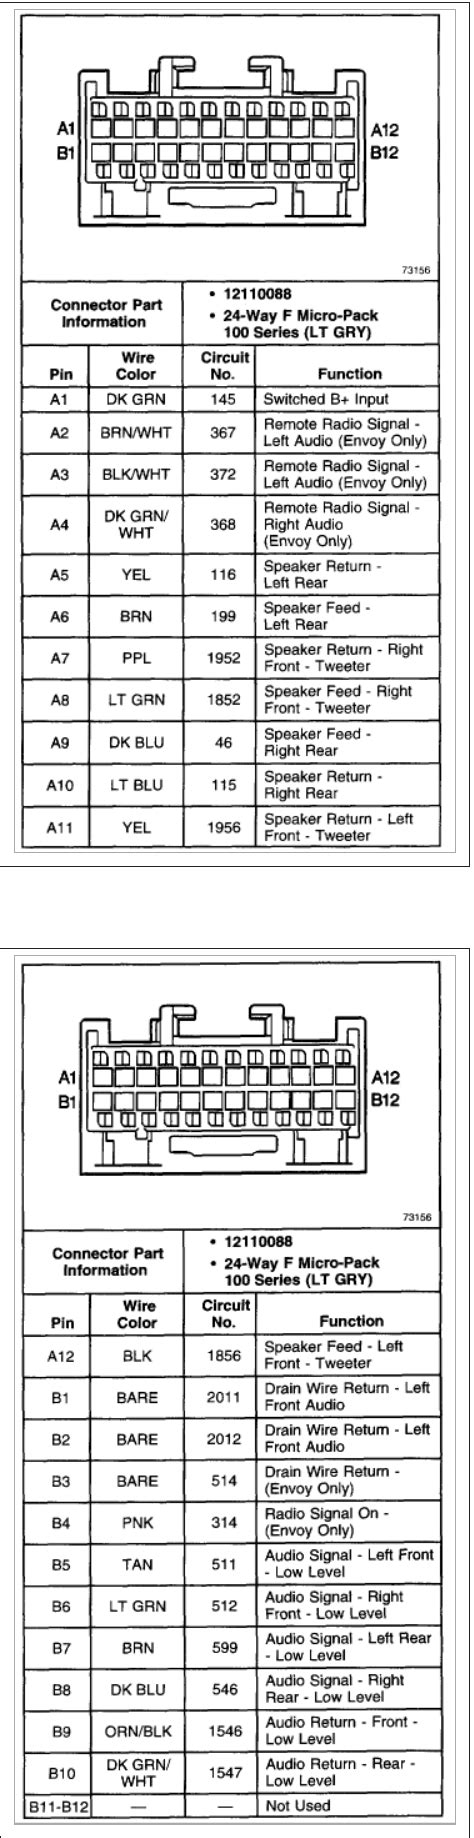 Gm Bose Amp Wiring Diagram 0 Comments